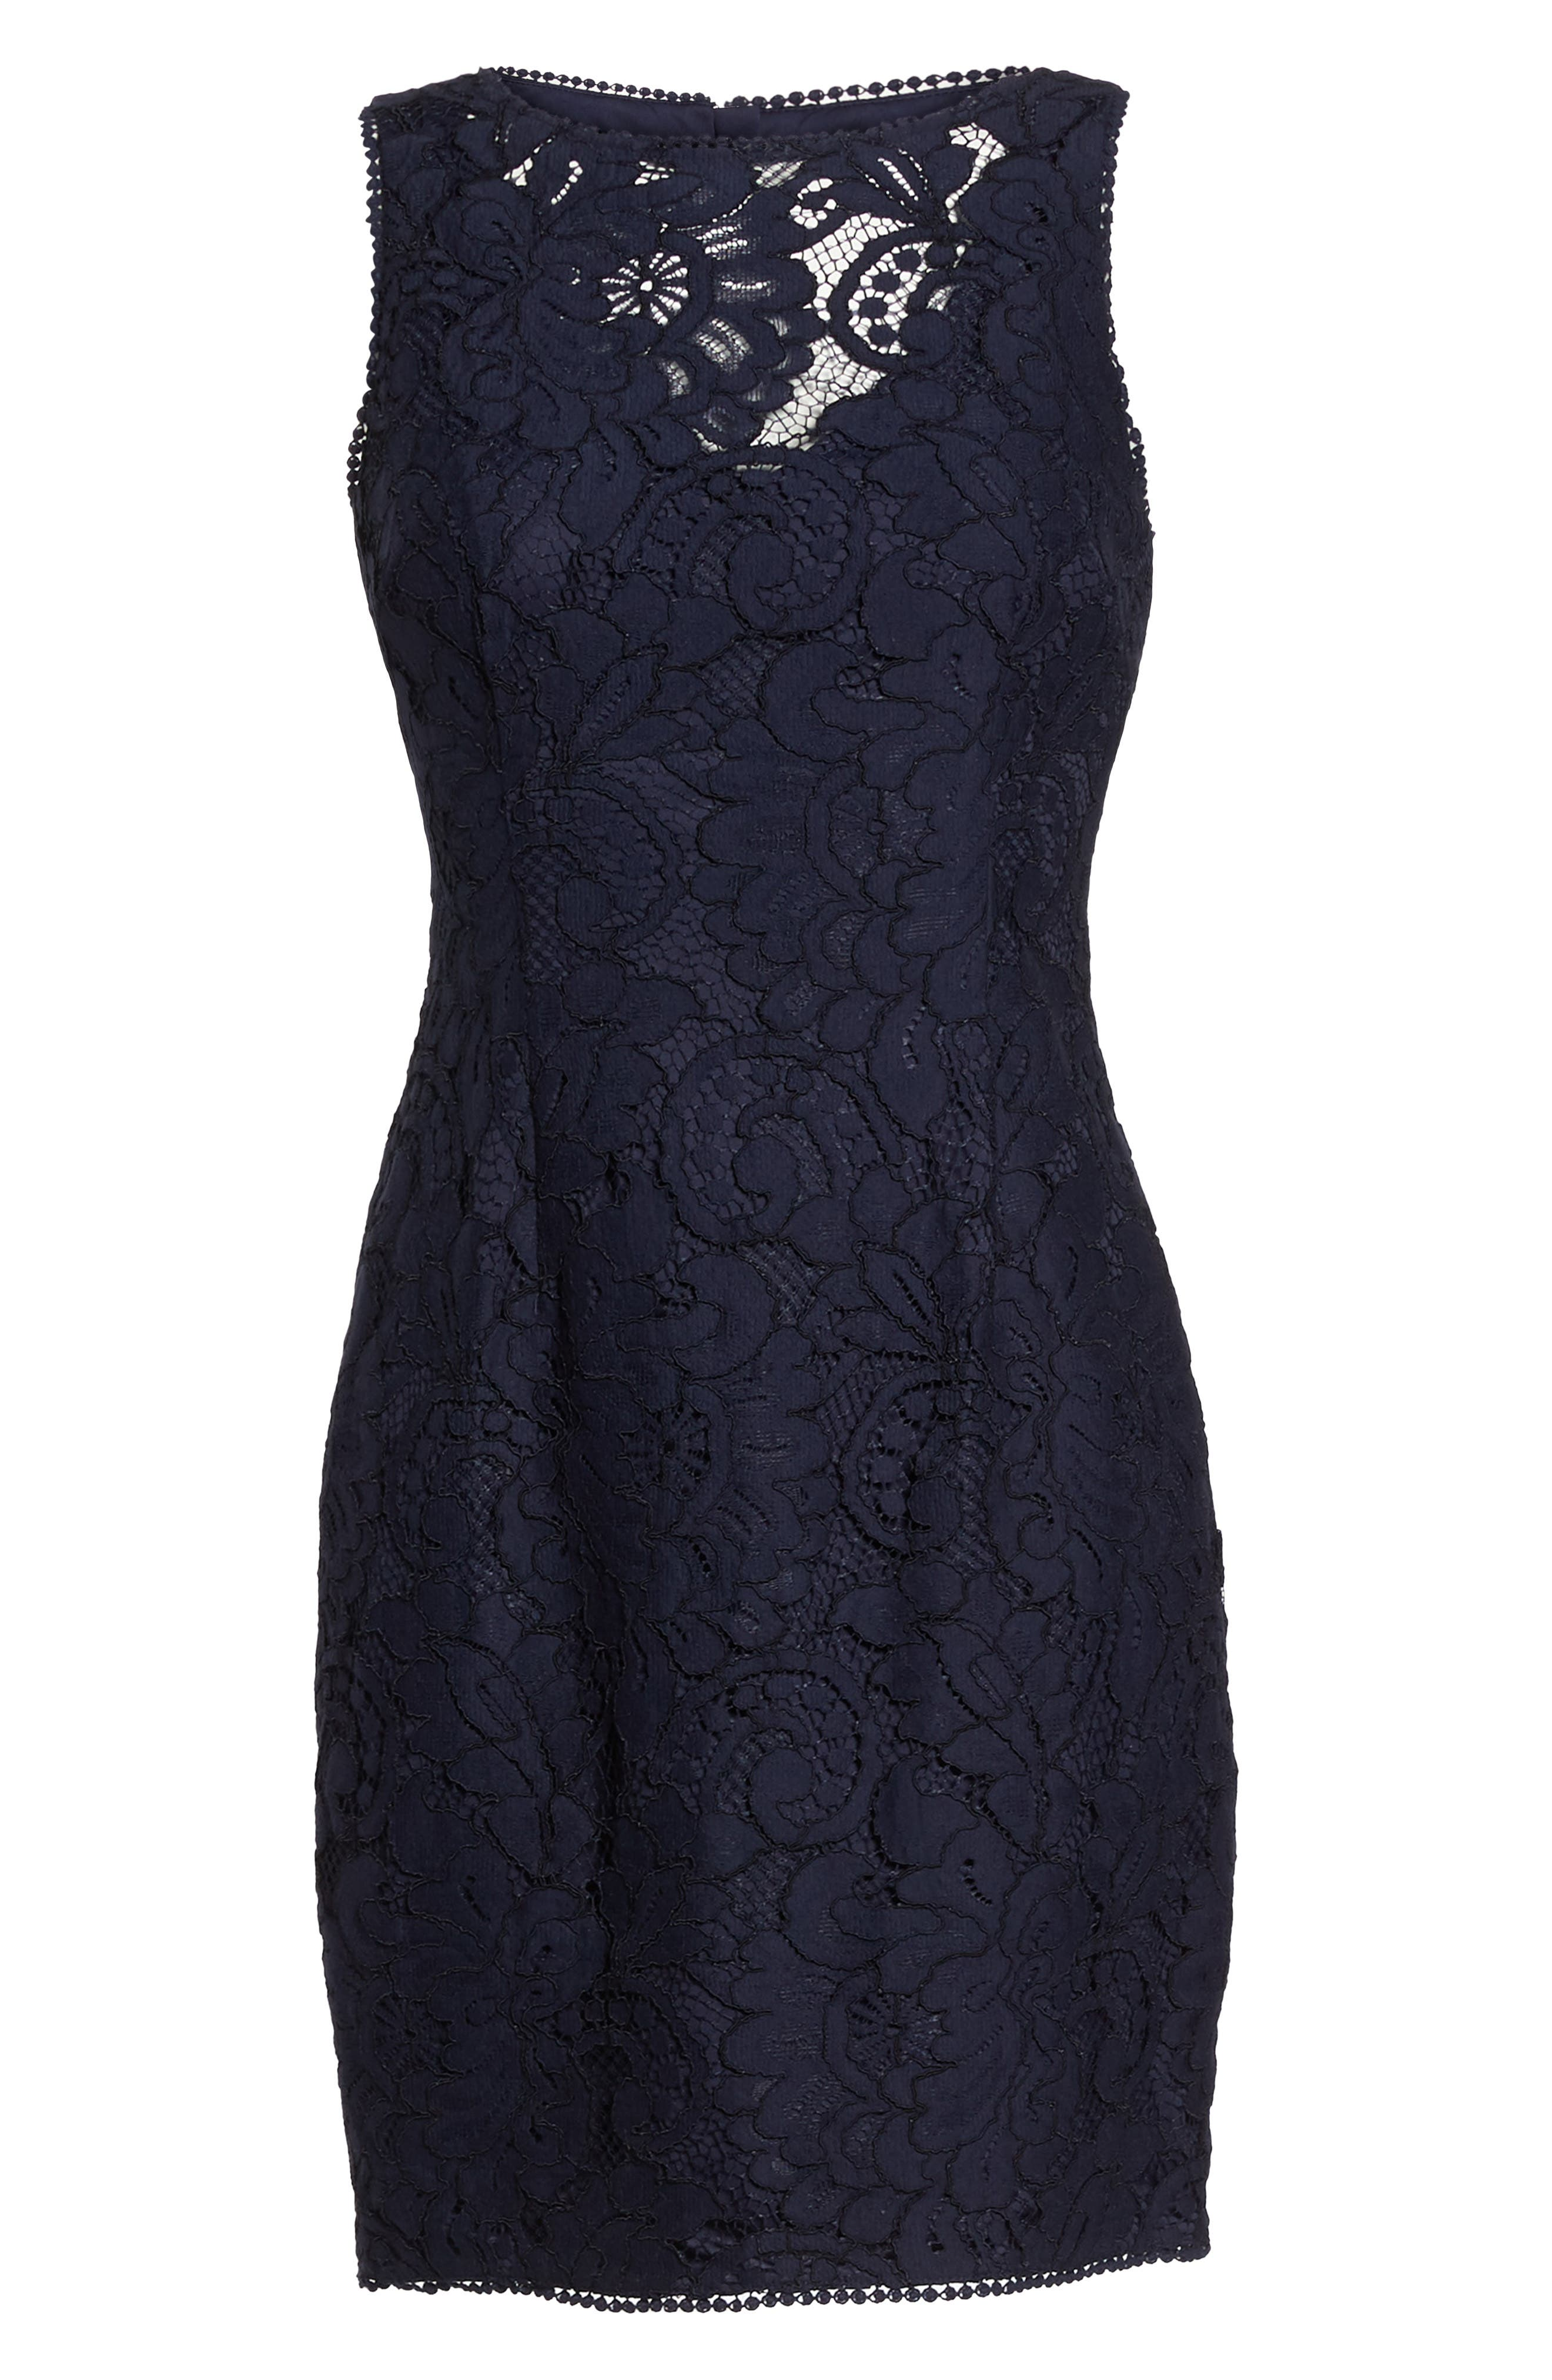 Lace Sheath Dress,                             Alternate thumbnail 7, color,                             Navy